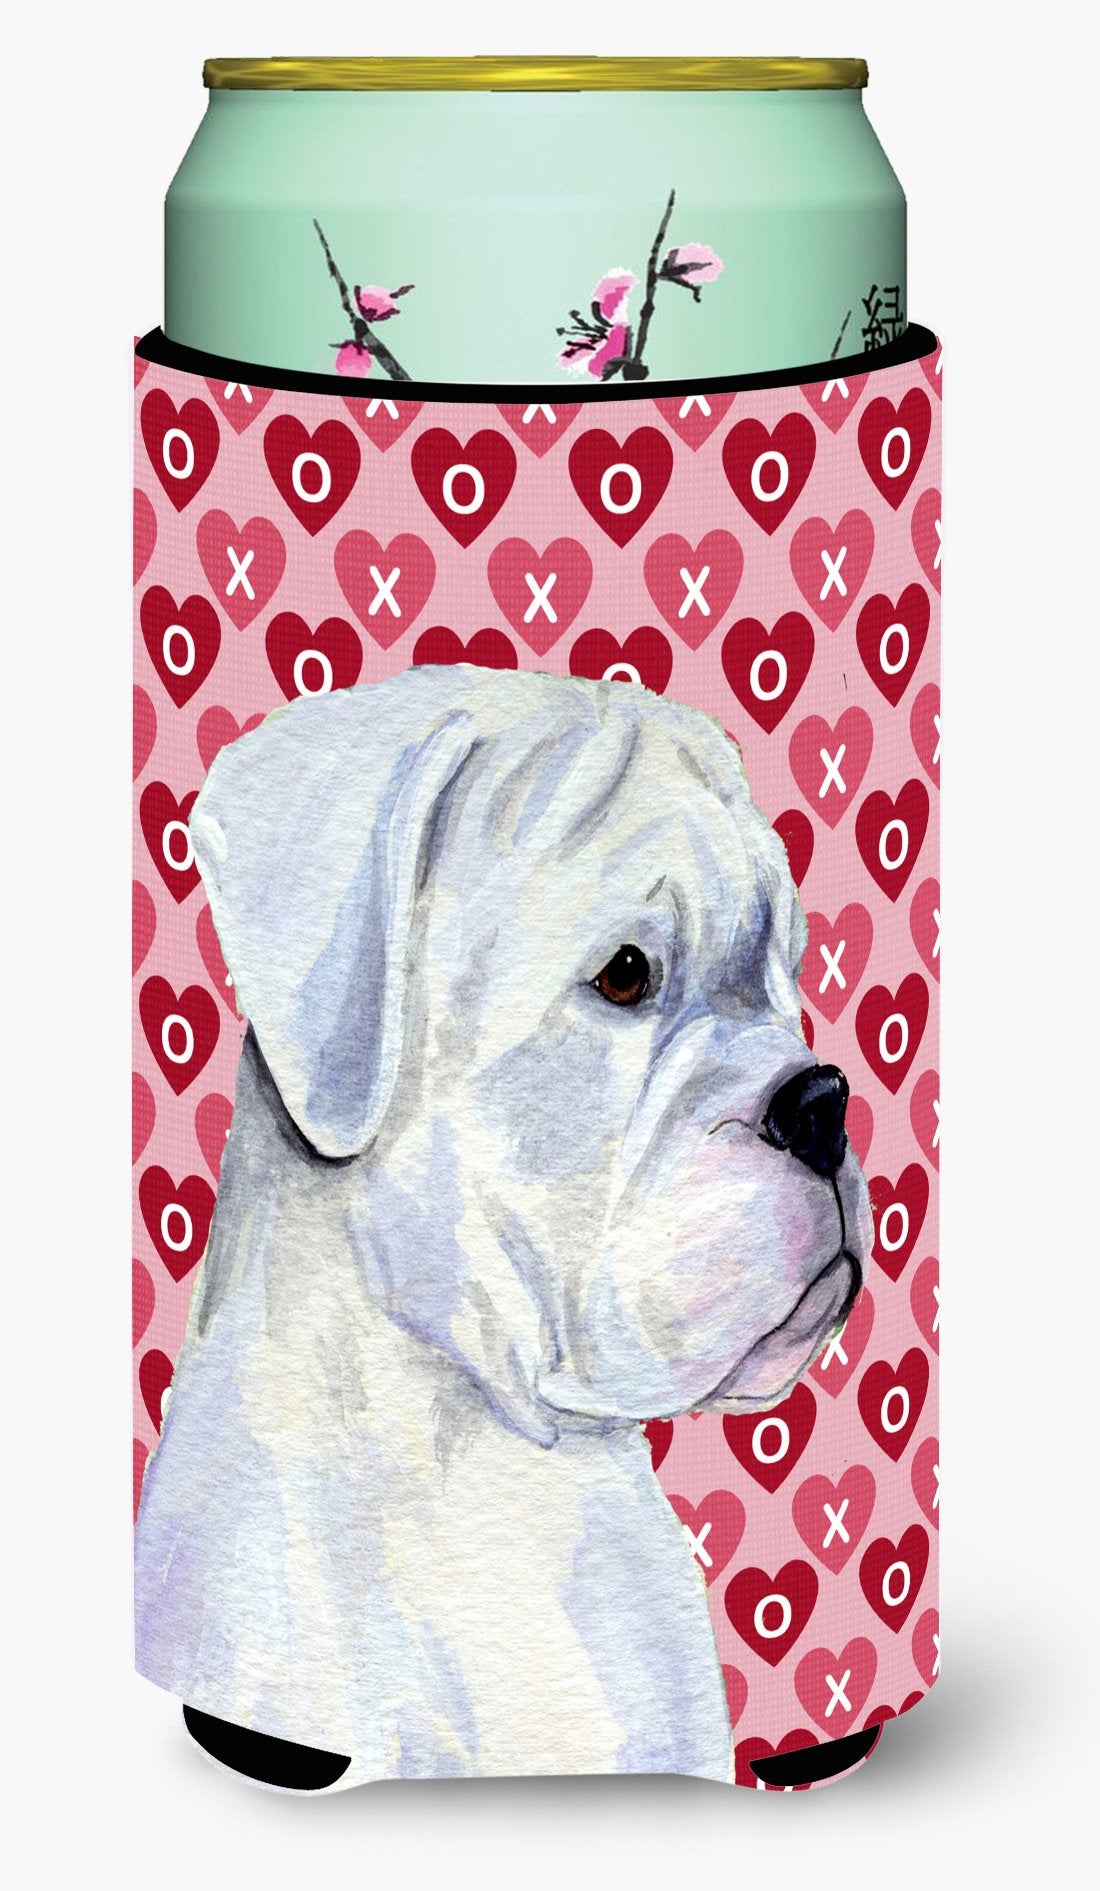 Buy this Boxer Hearts Love and Valentine's Day Portrait Tall Boy Beverage Insulator Beverage Insulator Hugger